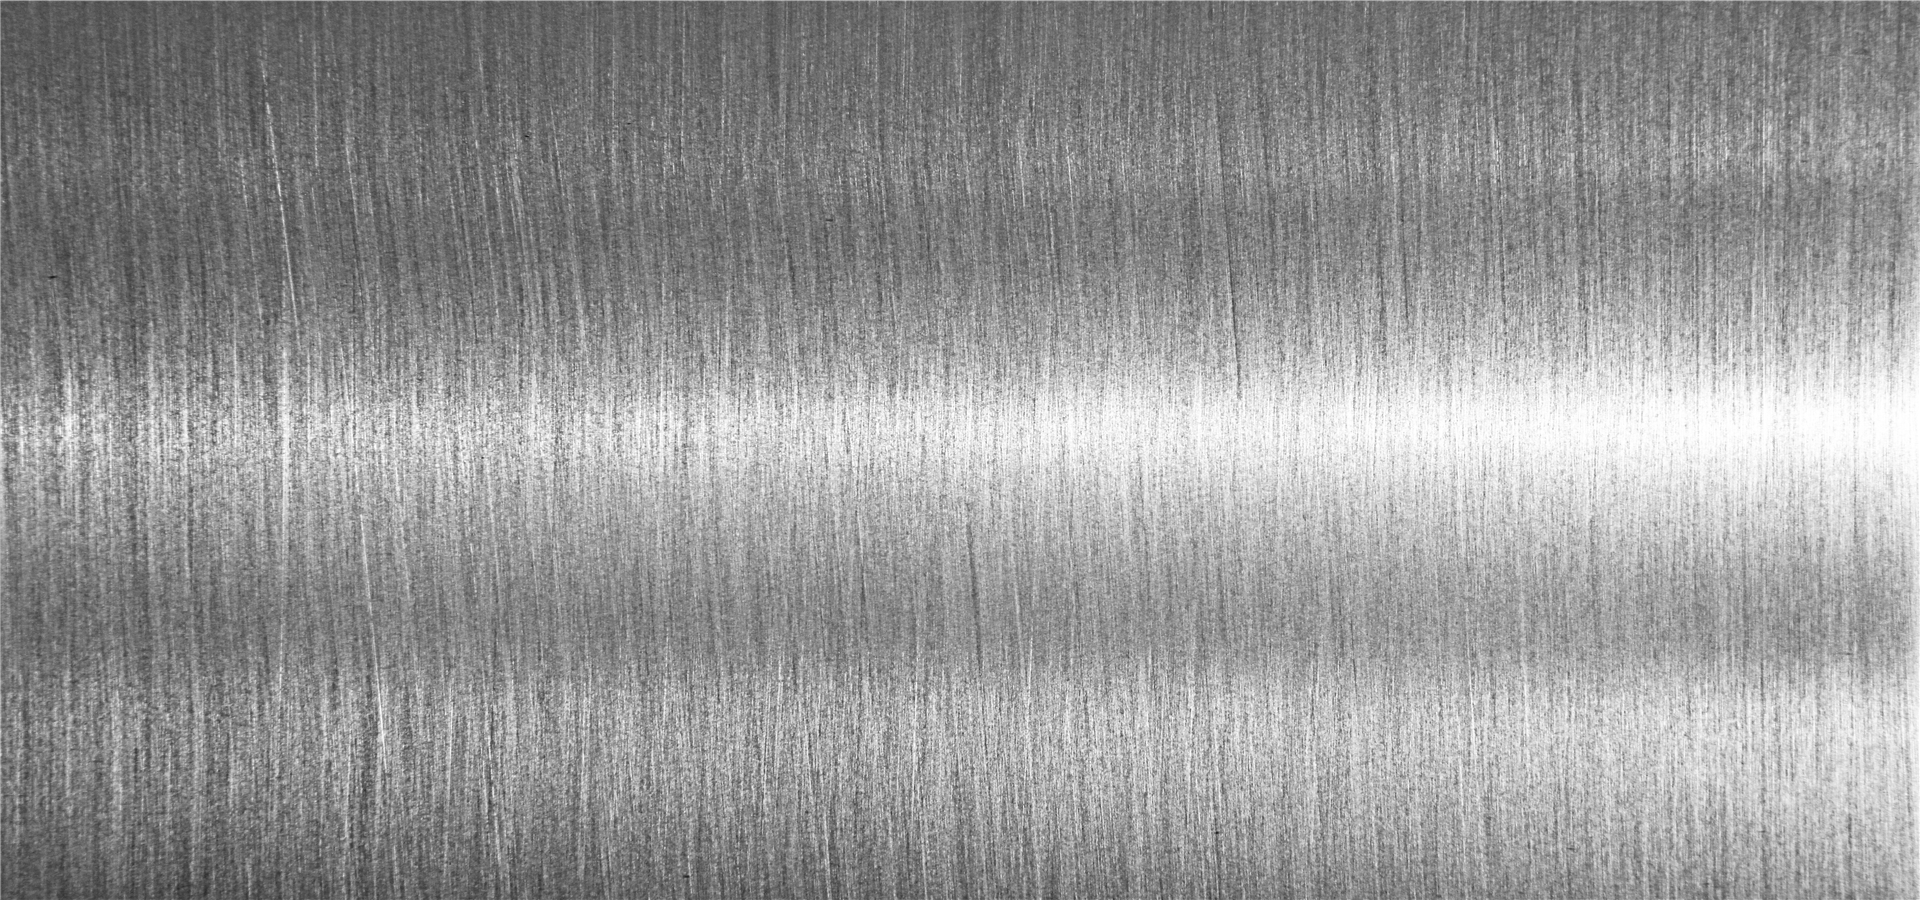 brushed stainless steel background  metal  poster  banner